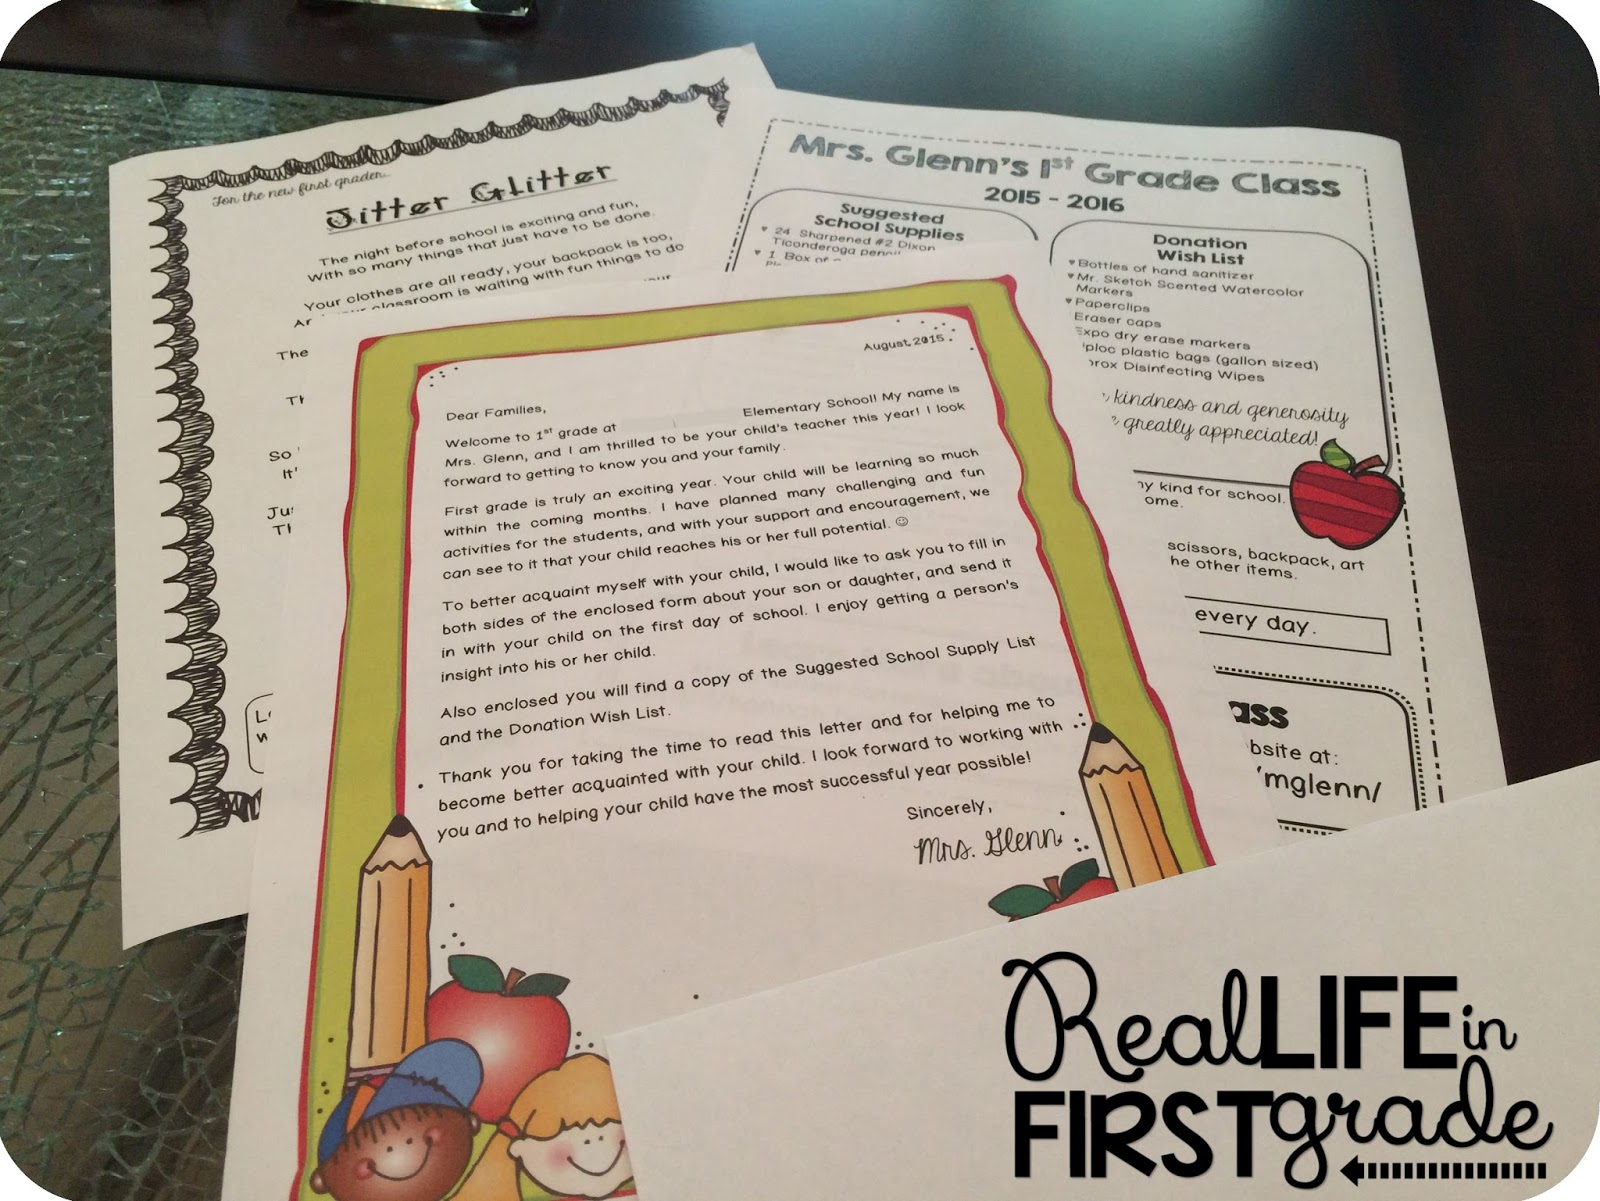 Real life in first grade july 2015 summer letter supply list and jitter glitter for back to school thecheapjerseys Choice Image